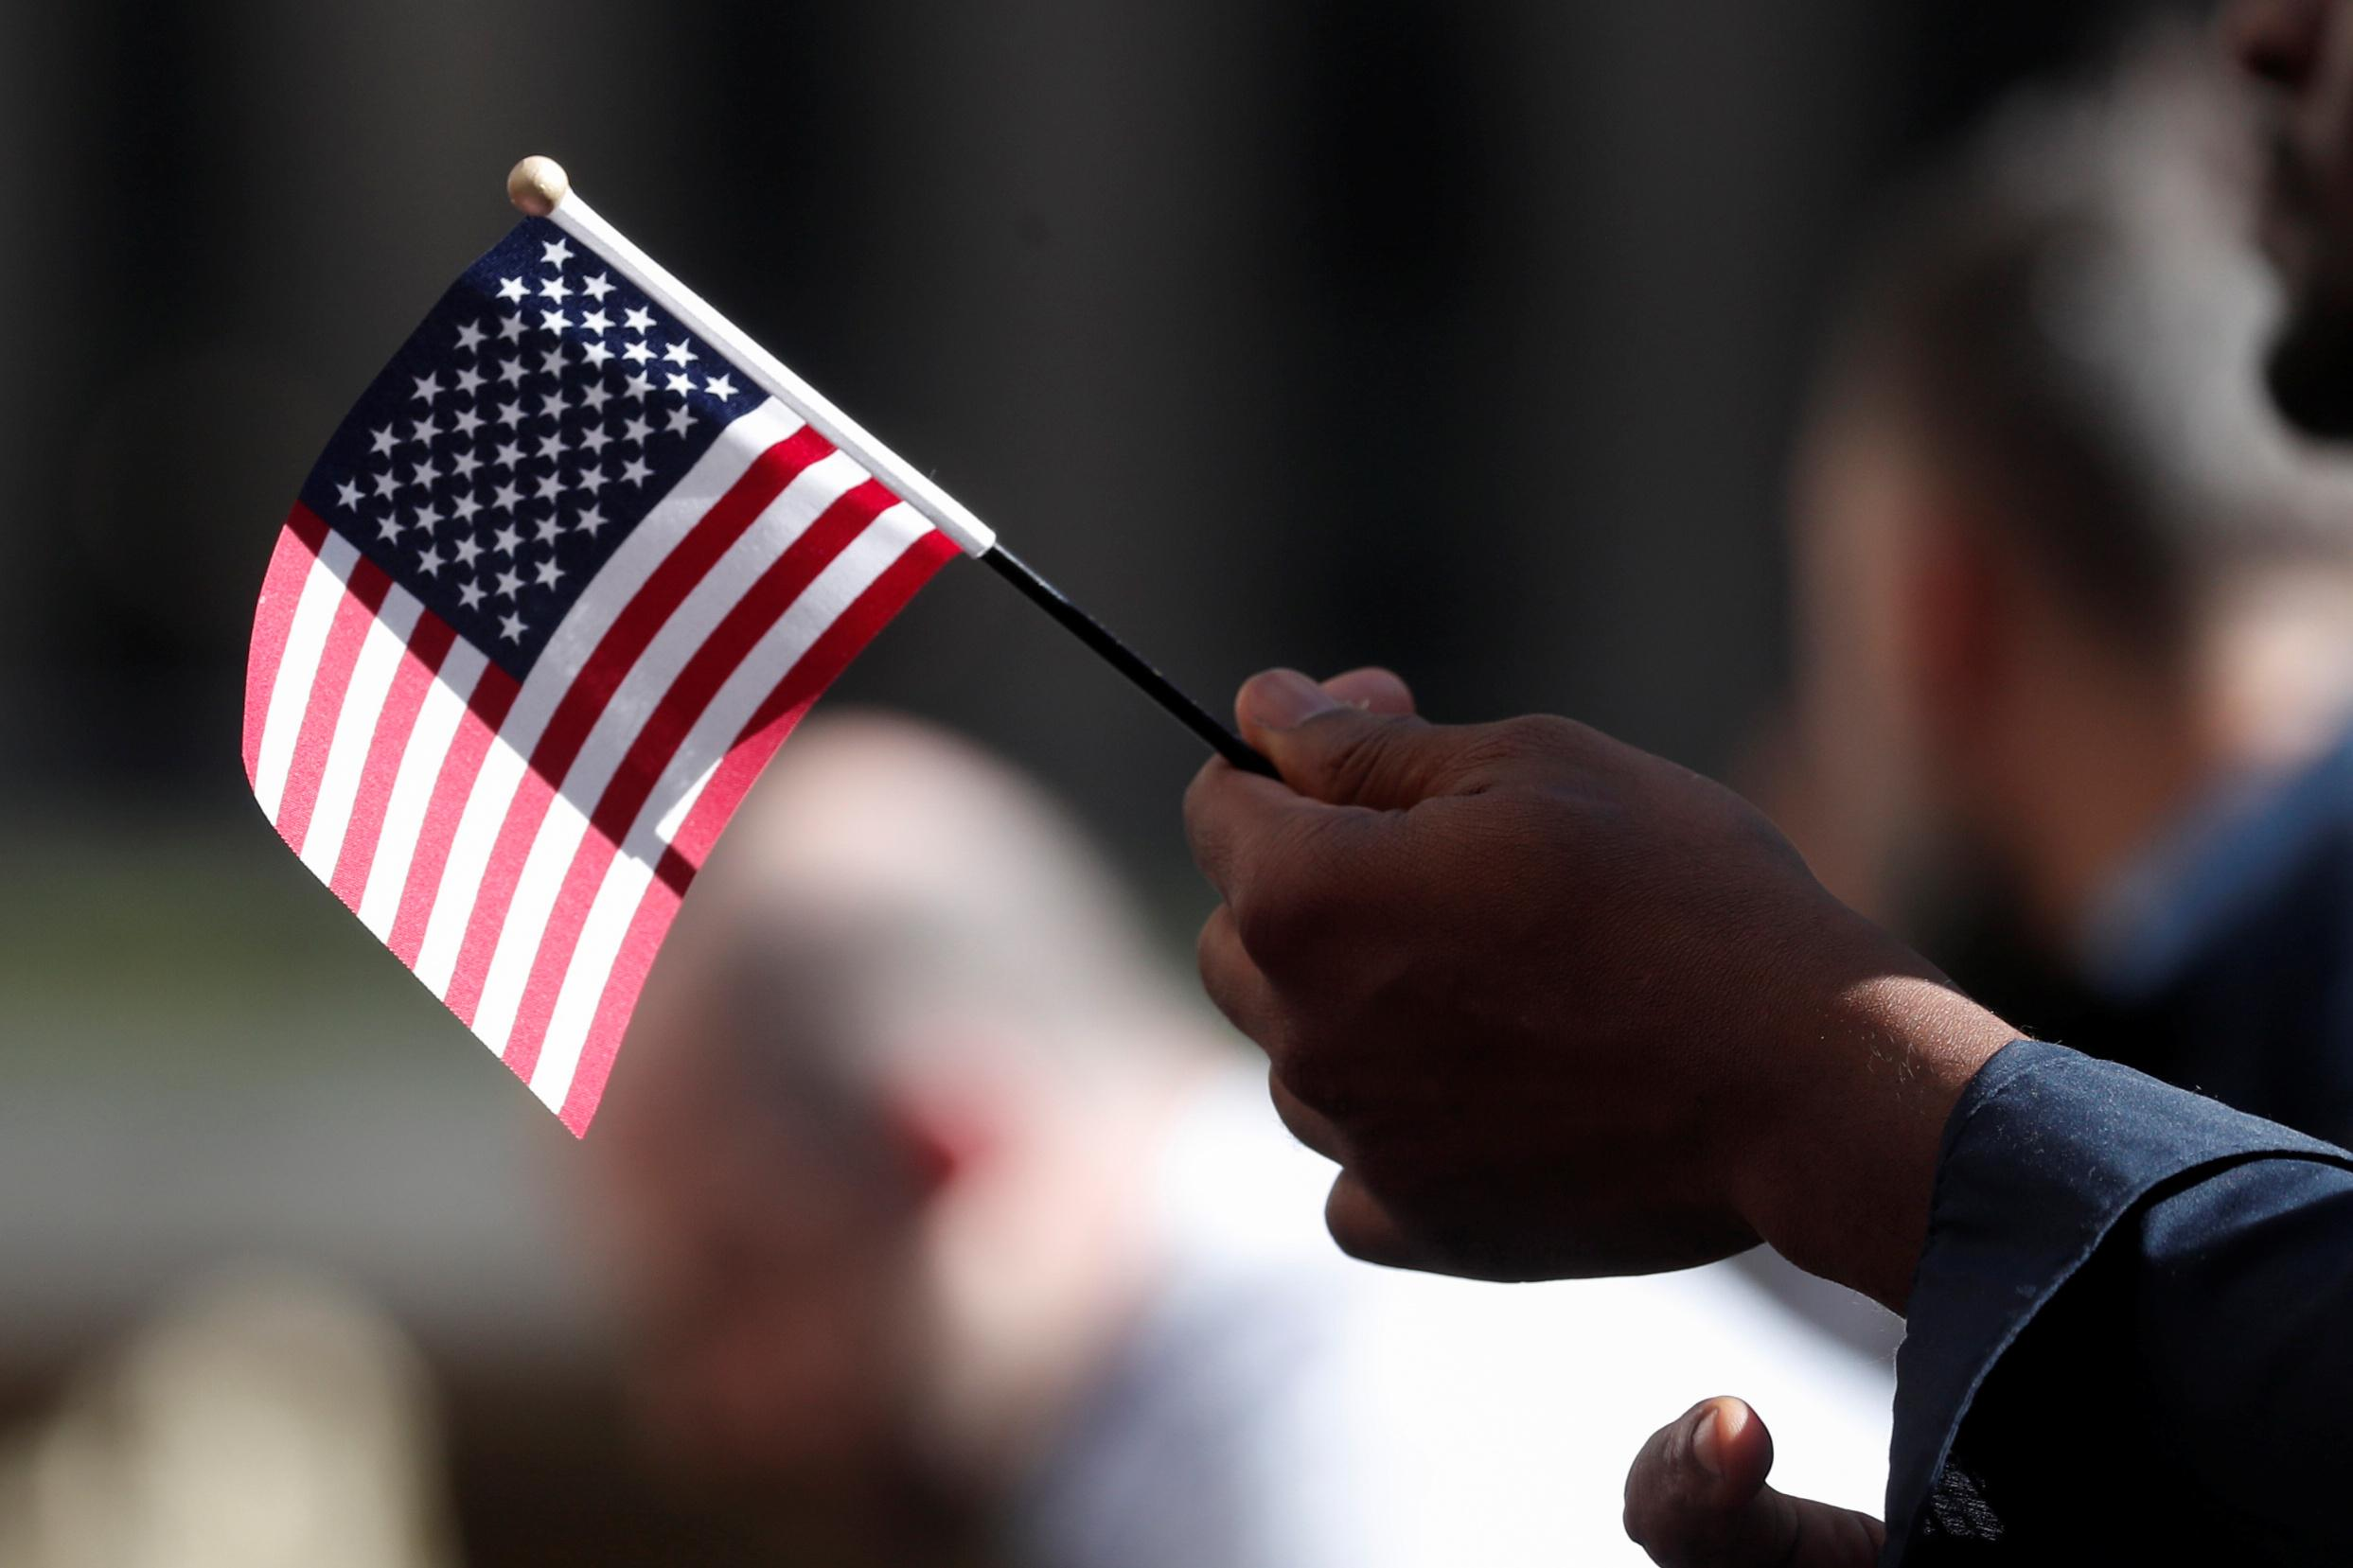 U.S. proposes denying work permits to asylum seekers who enter...